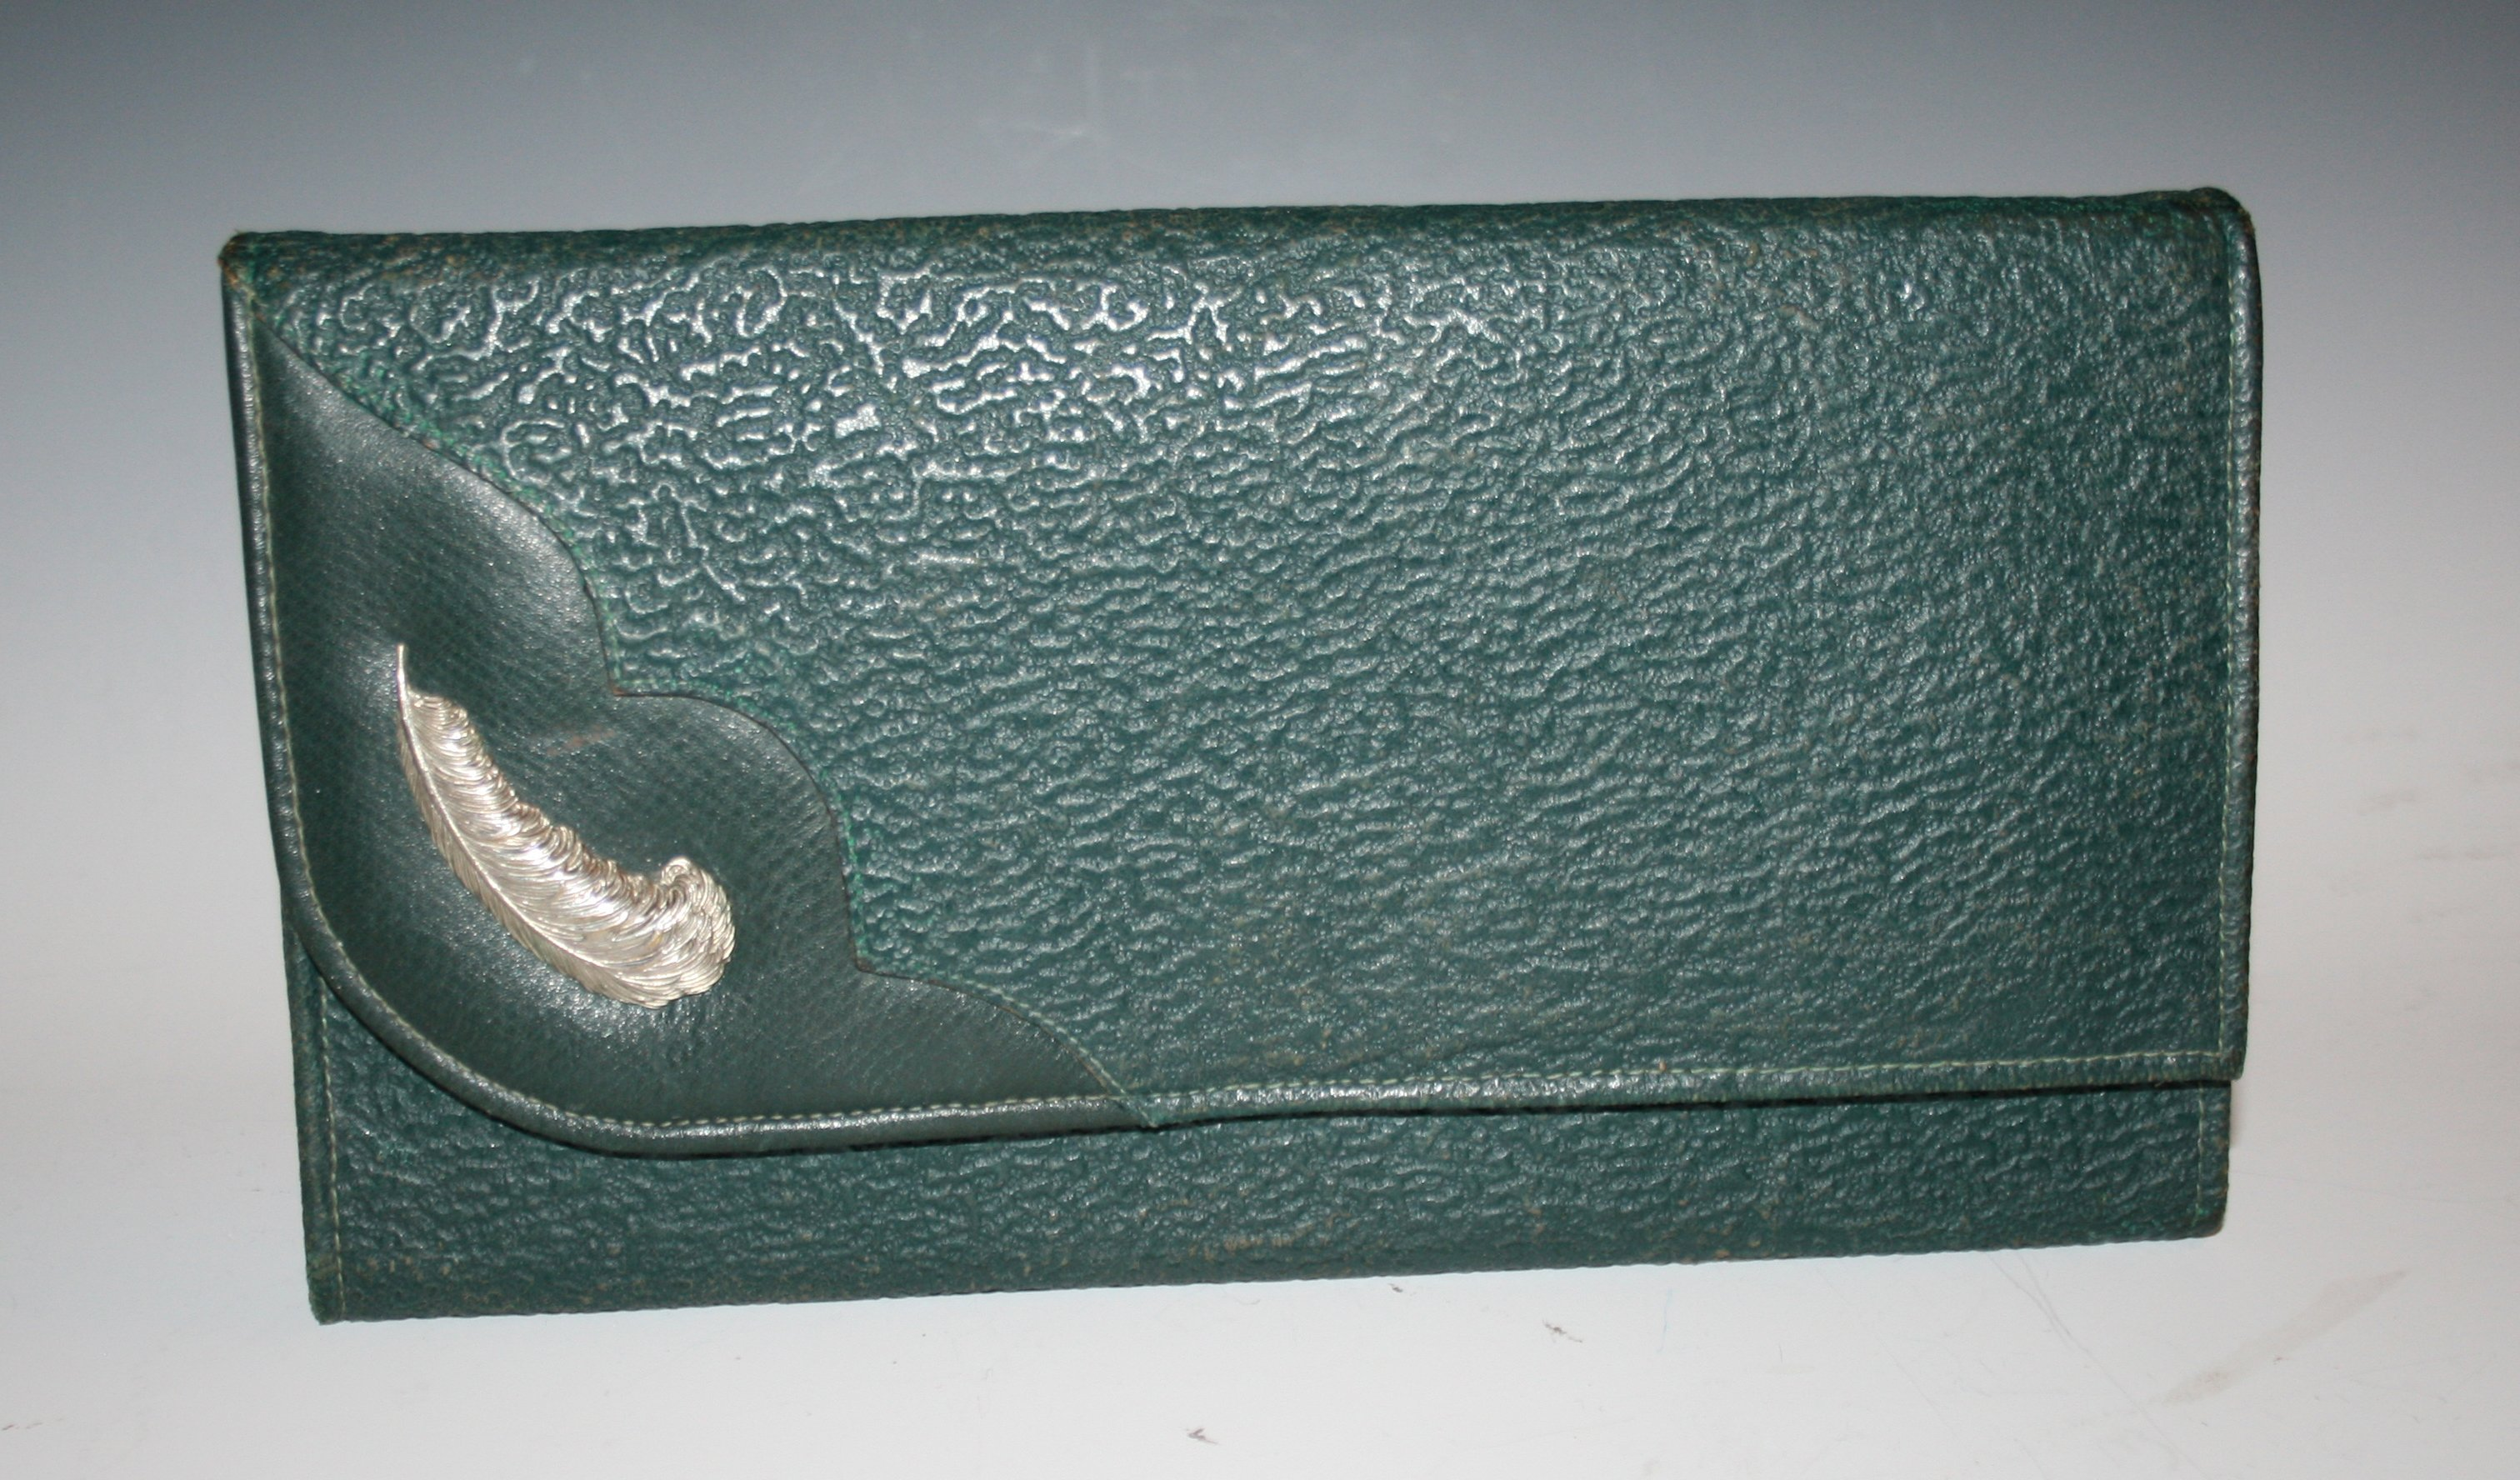 Green leather purse with a feather